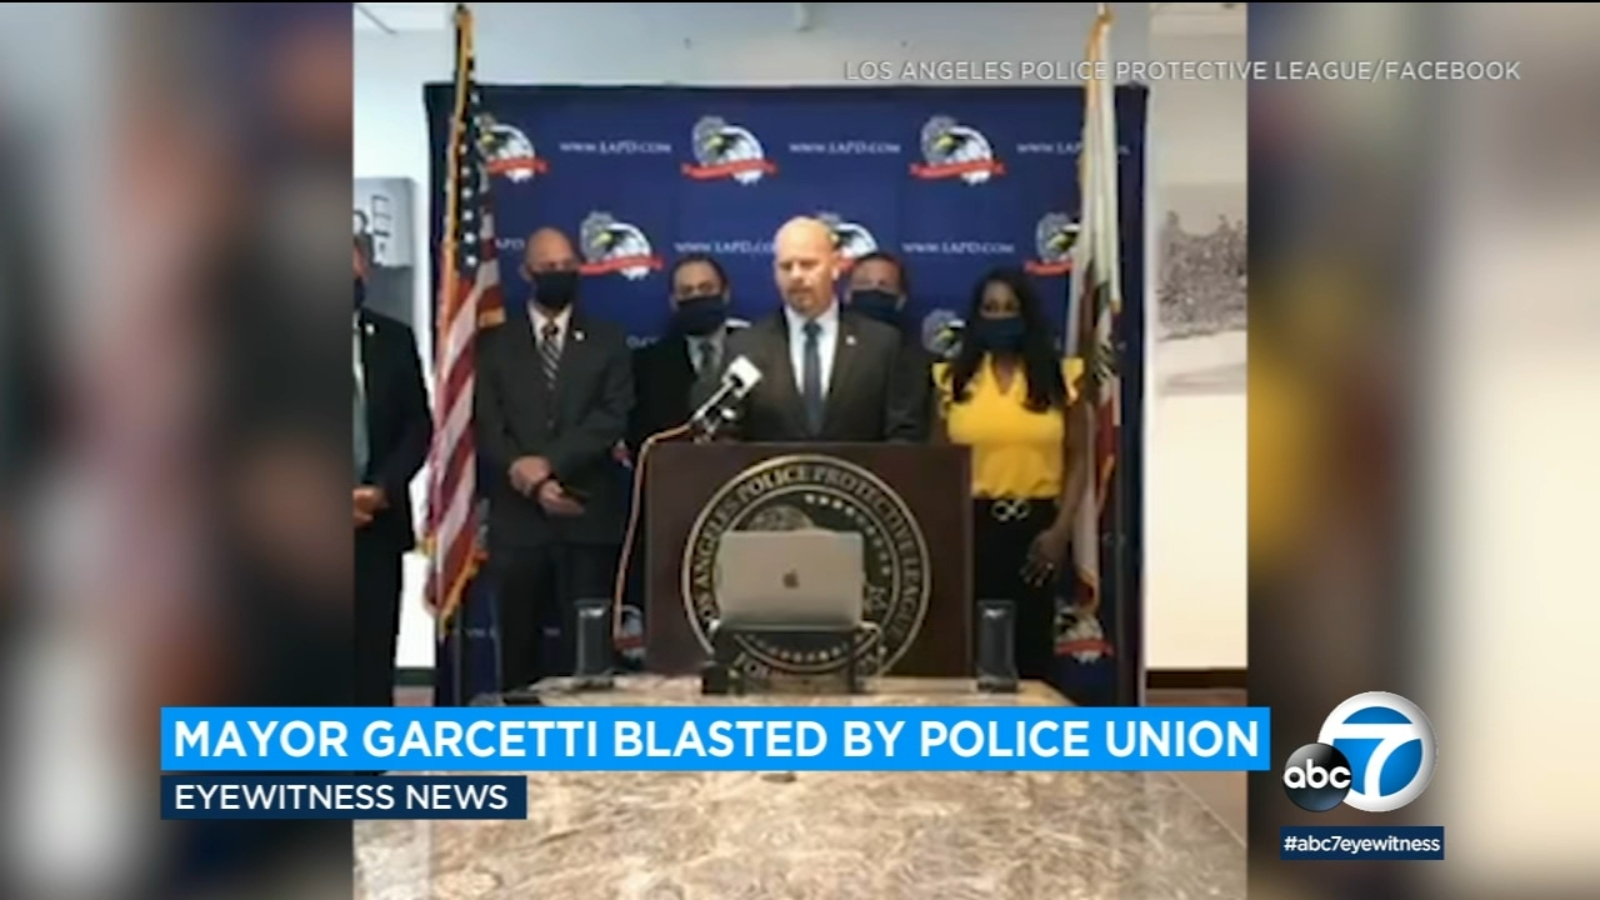 Amid proposed budget cuts, Los Angeles police union says Mayor Garcetti has 'lost his damn mind'